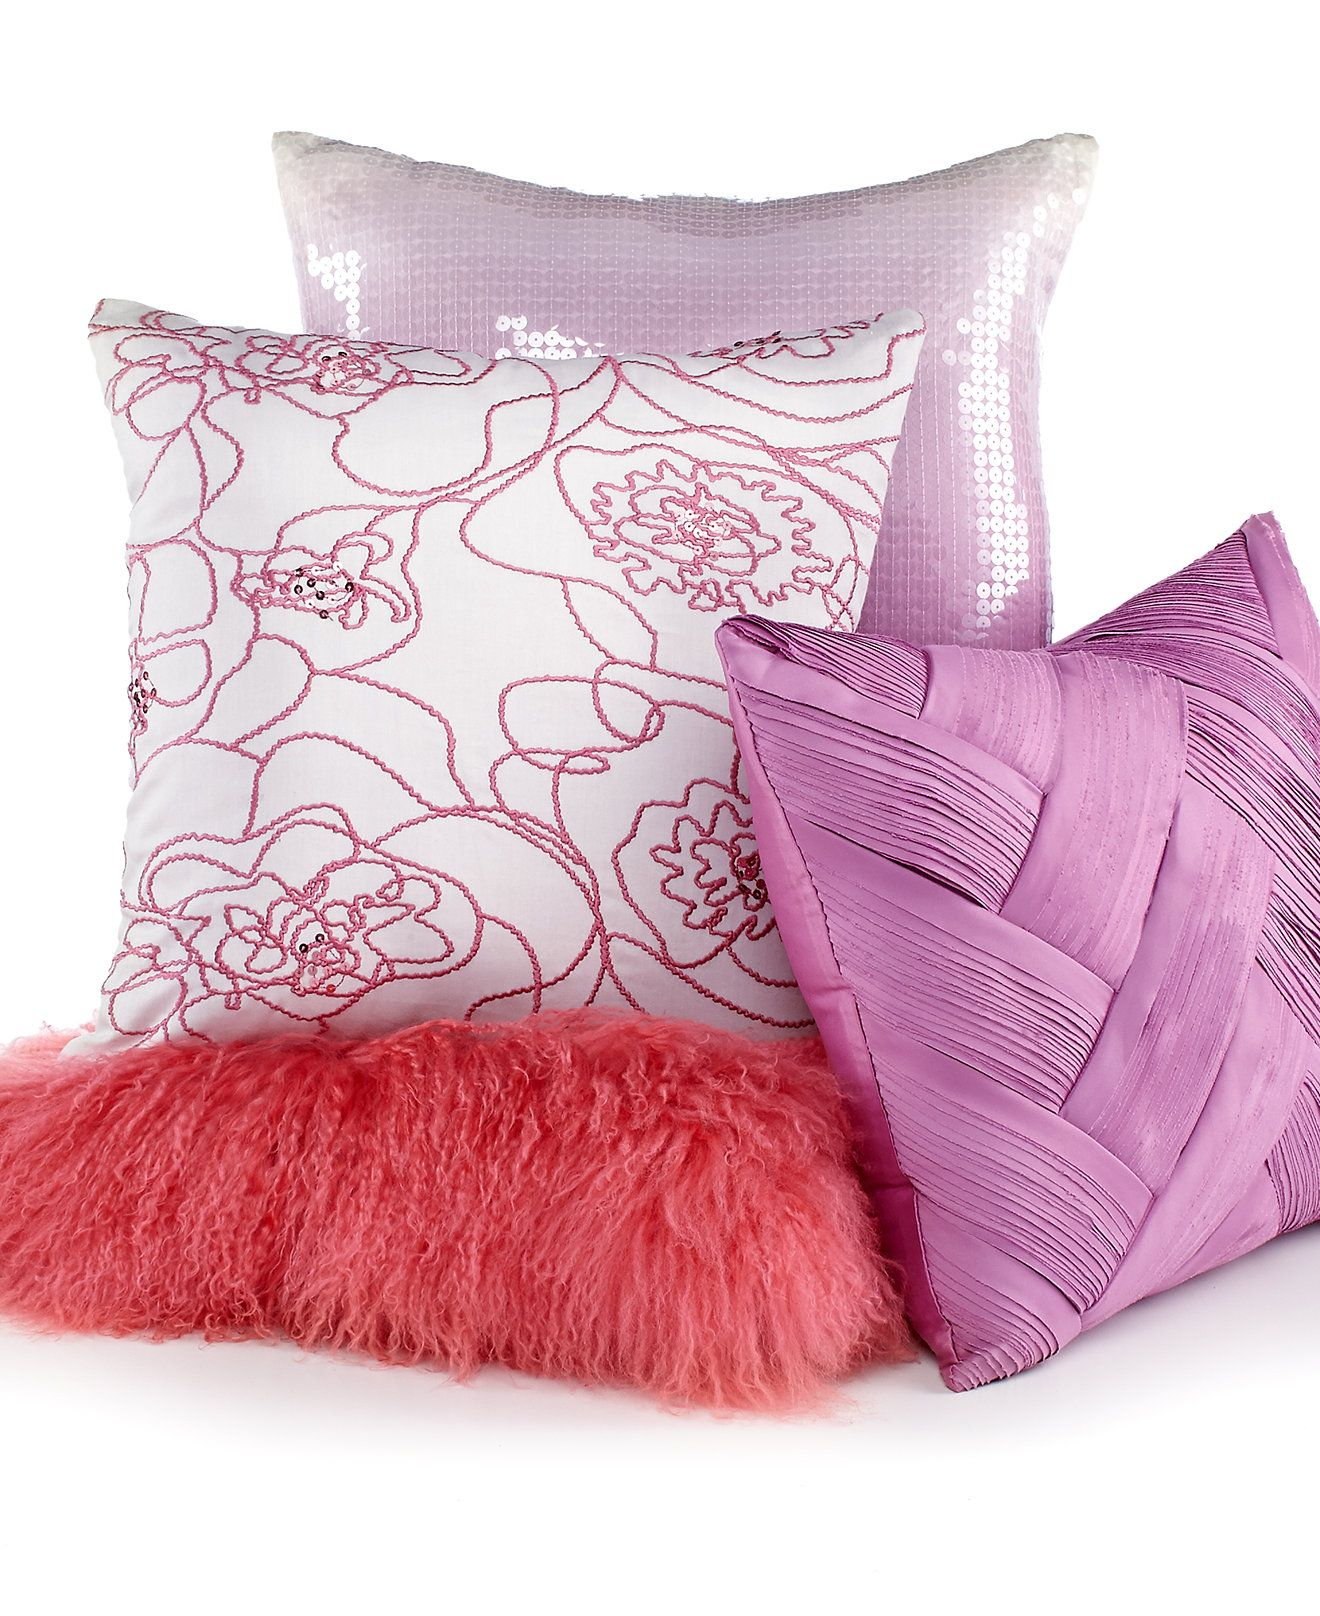 Macy's Decorative Pillows Magnificent Inc International Concepts Ava Decorative Pillow Collection Design Ideas